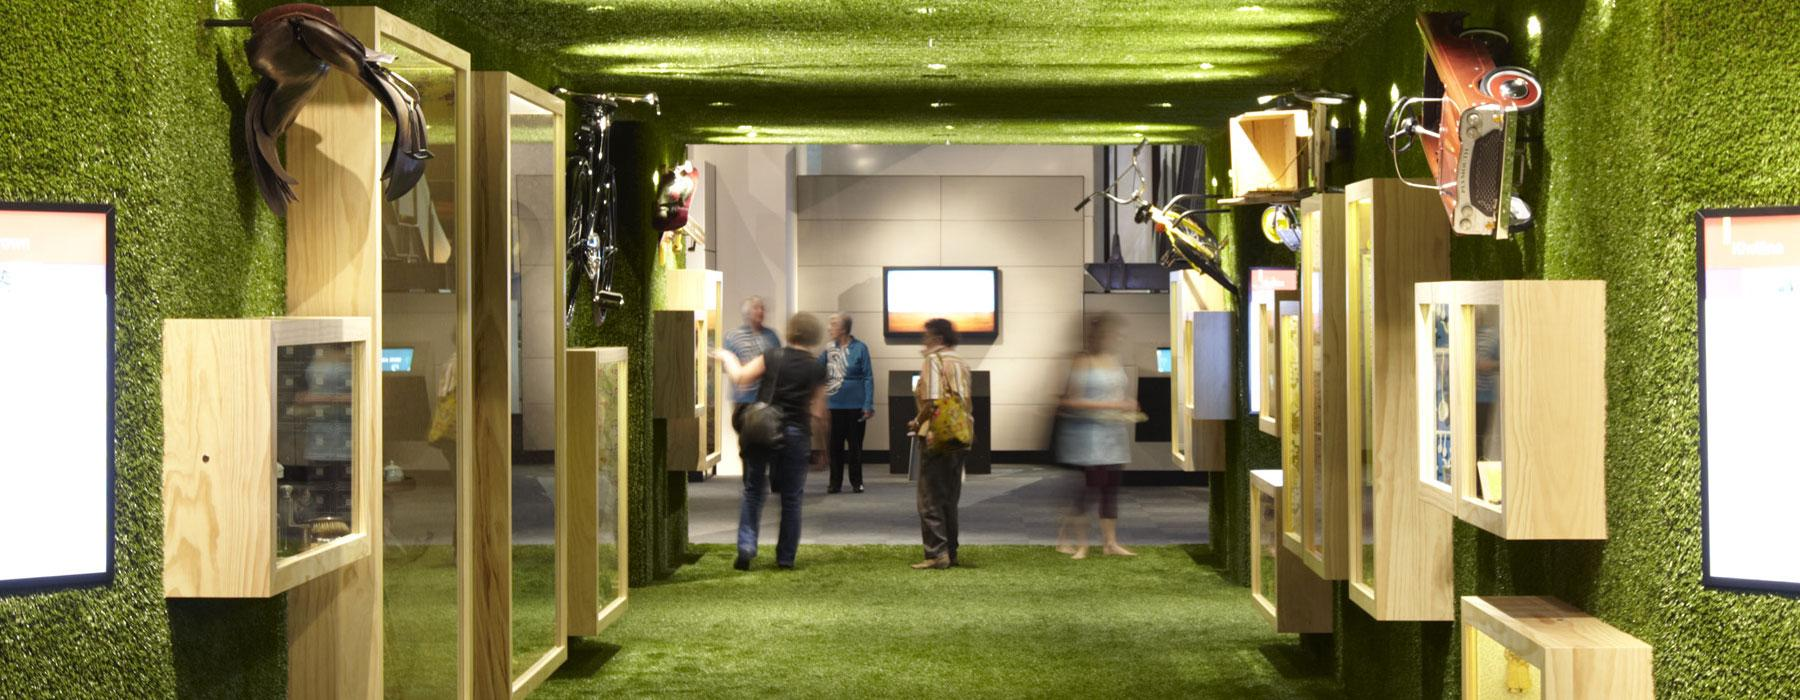 Slice of Heaven exhibition, 2010. Photograph by Michael Hall. Te Papa